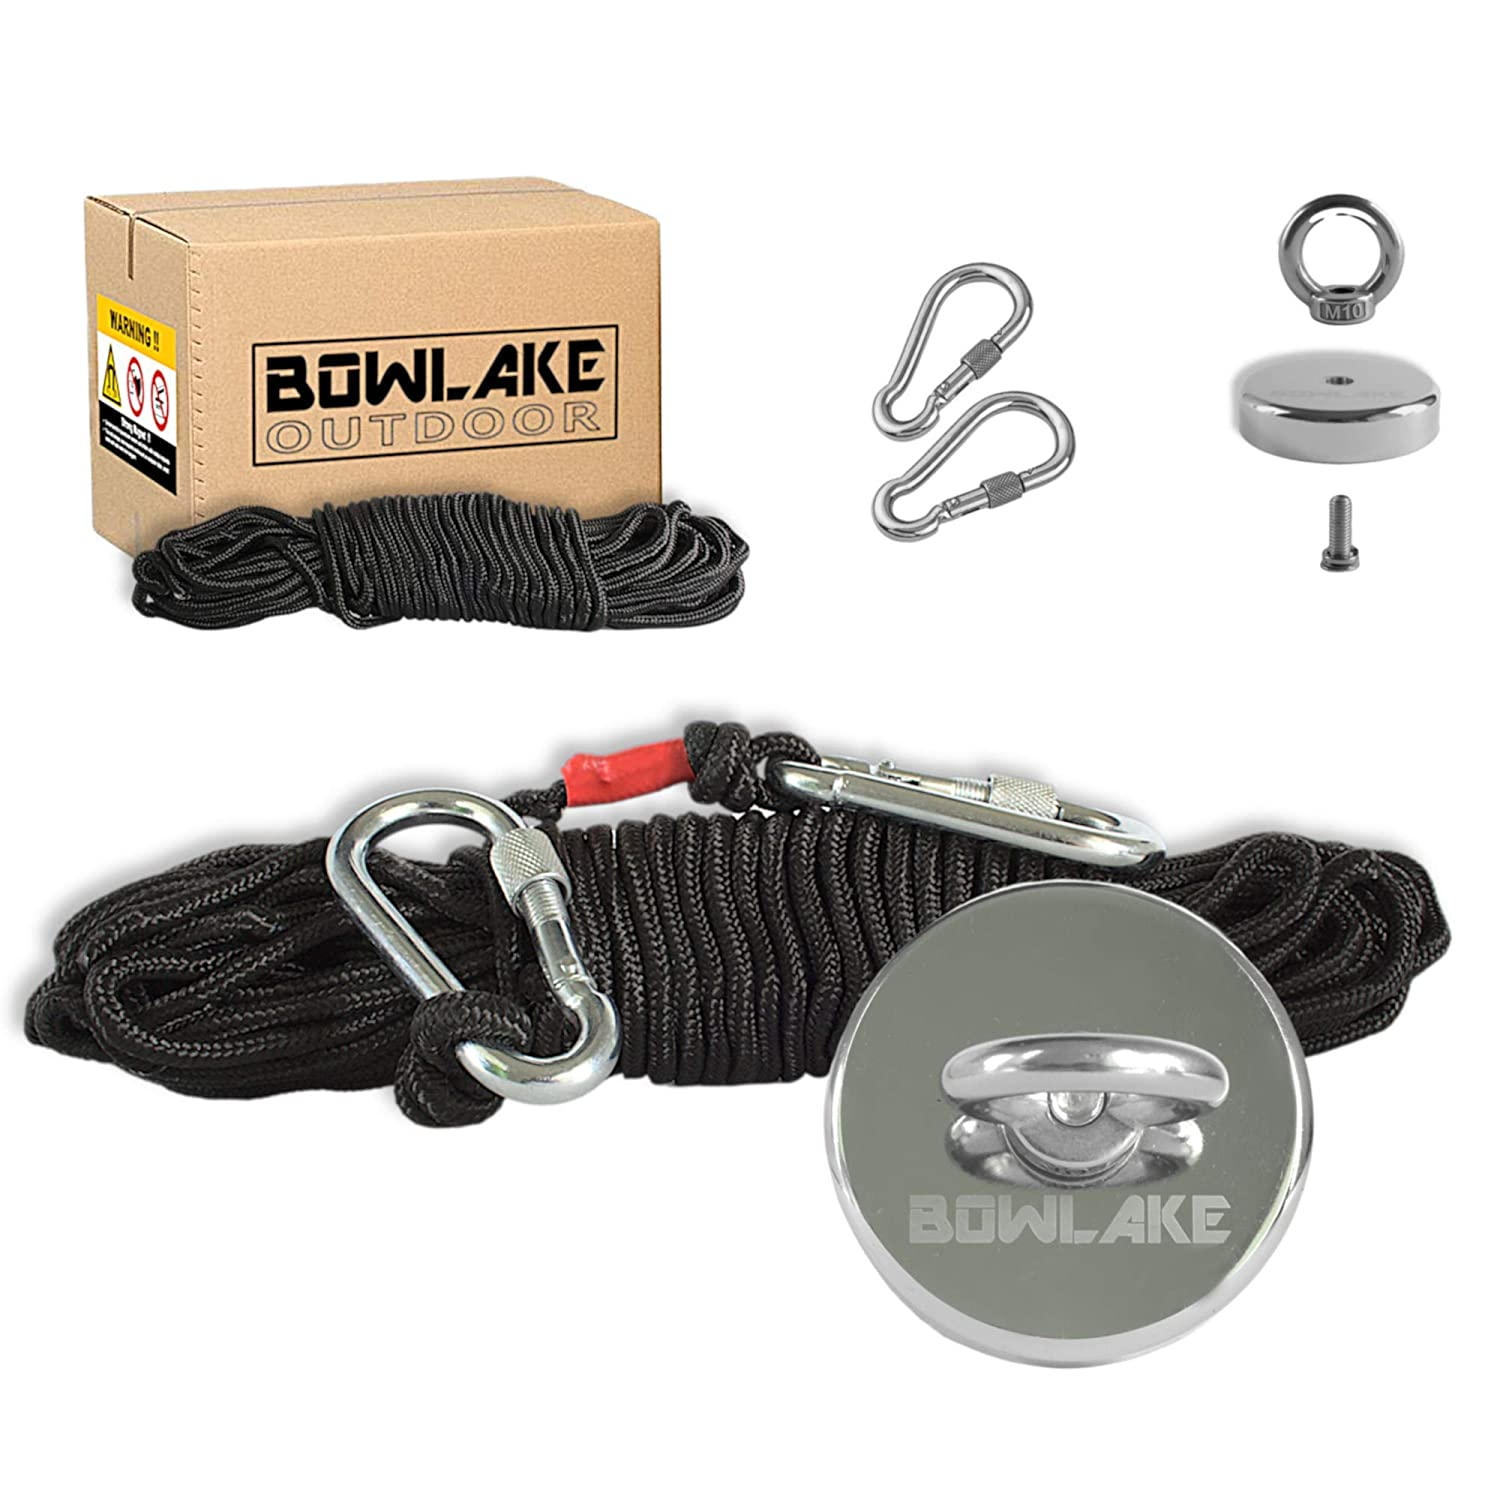 Underwater Metal Detector Neodymium Rare Earth N52 Fishing Magnet with 65ft Rope and 2 Carabiner Clips Bowlake Industrial Permanent Fishing Magnet Kit with Over 550Lbs 250KG Pulling Force 20m